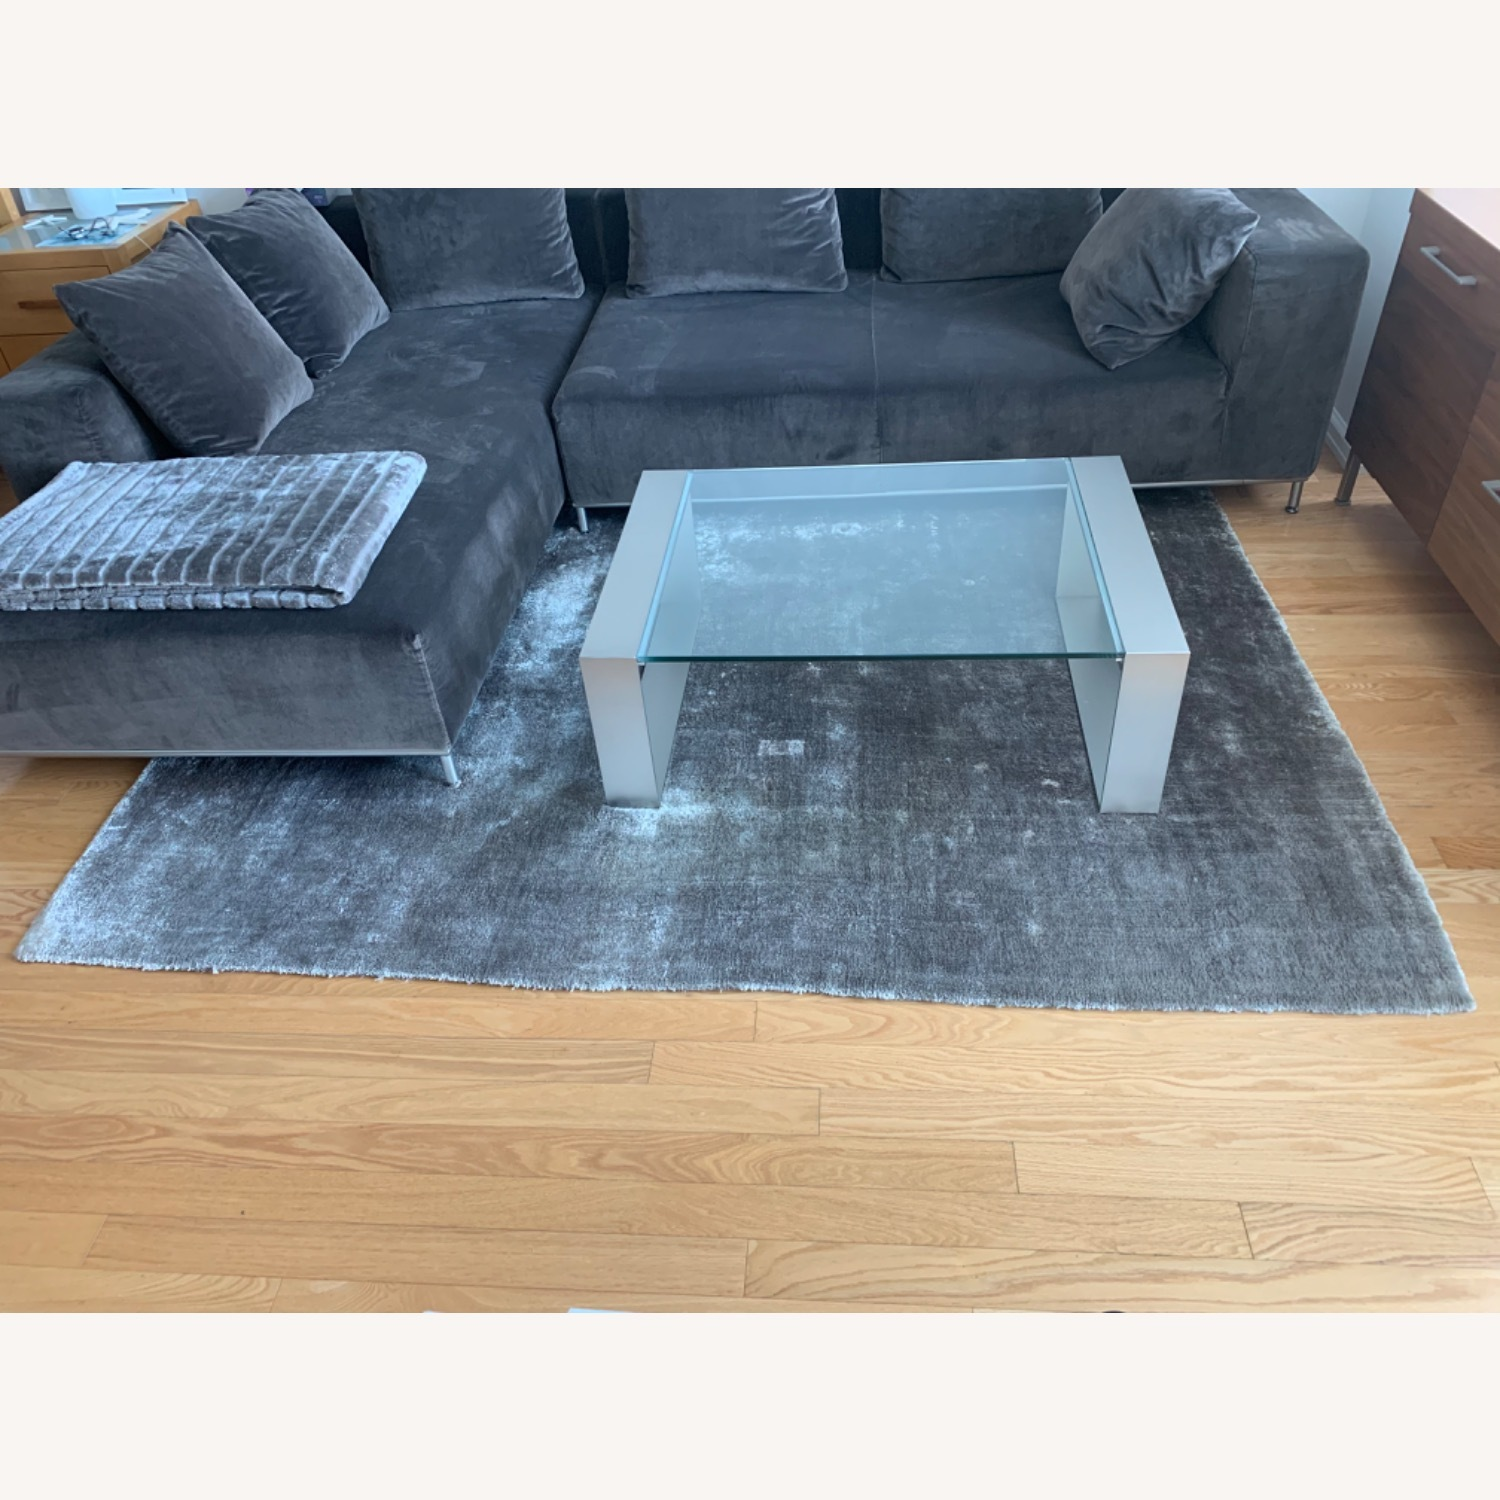 Lucens Rug by Linie Design - image-1